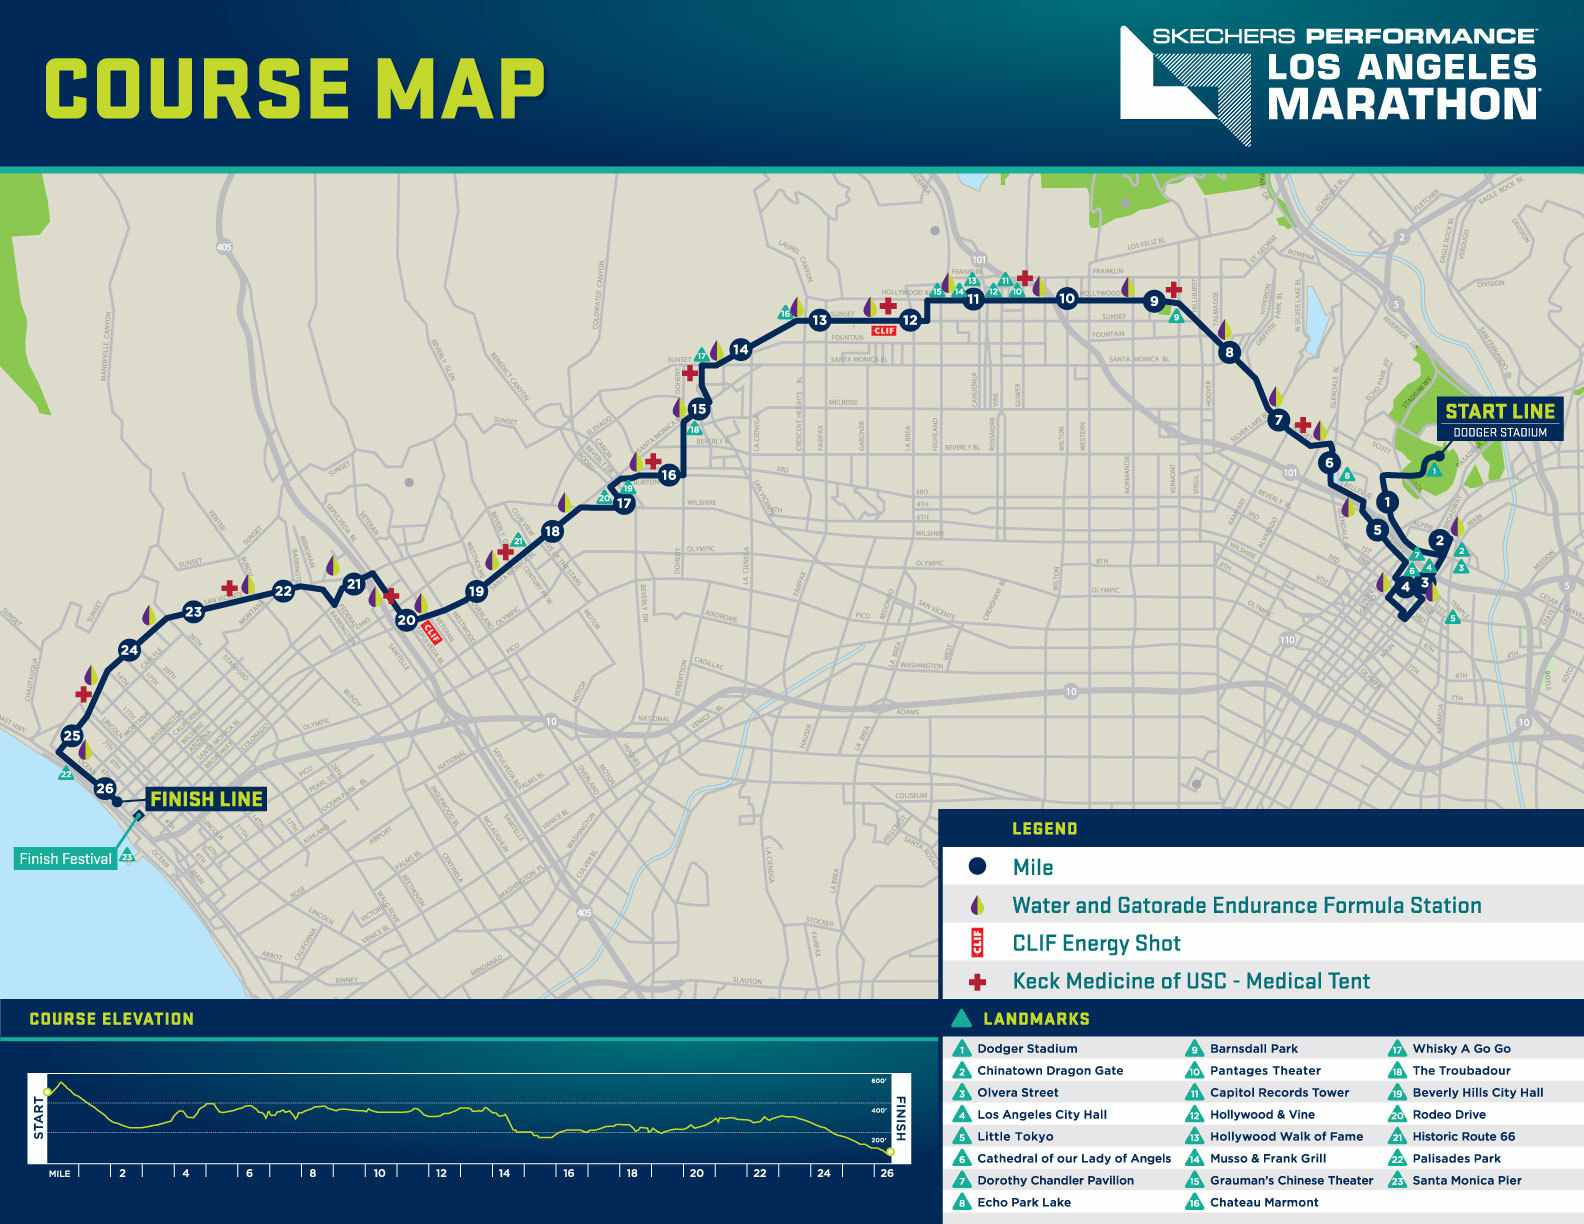 Los Angeles Marathon 2018: Overview and General Information